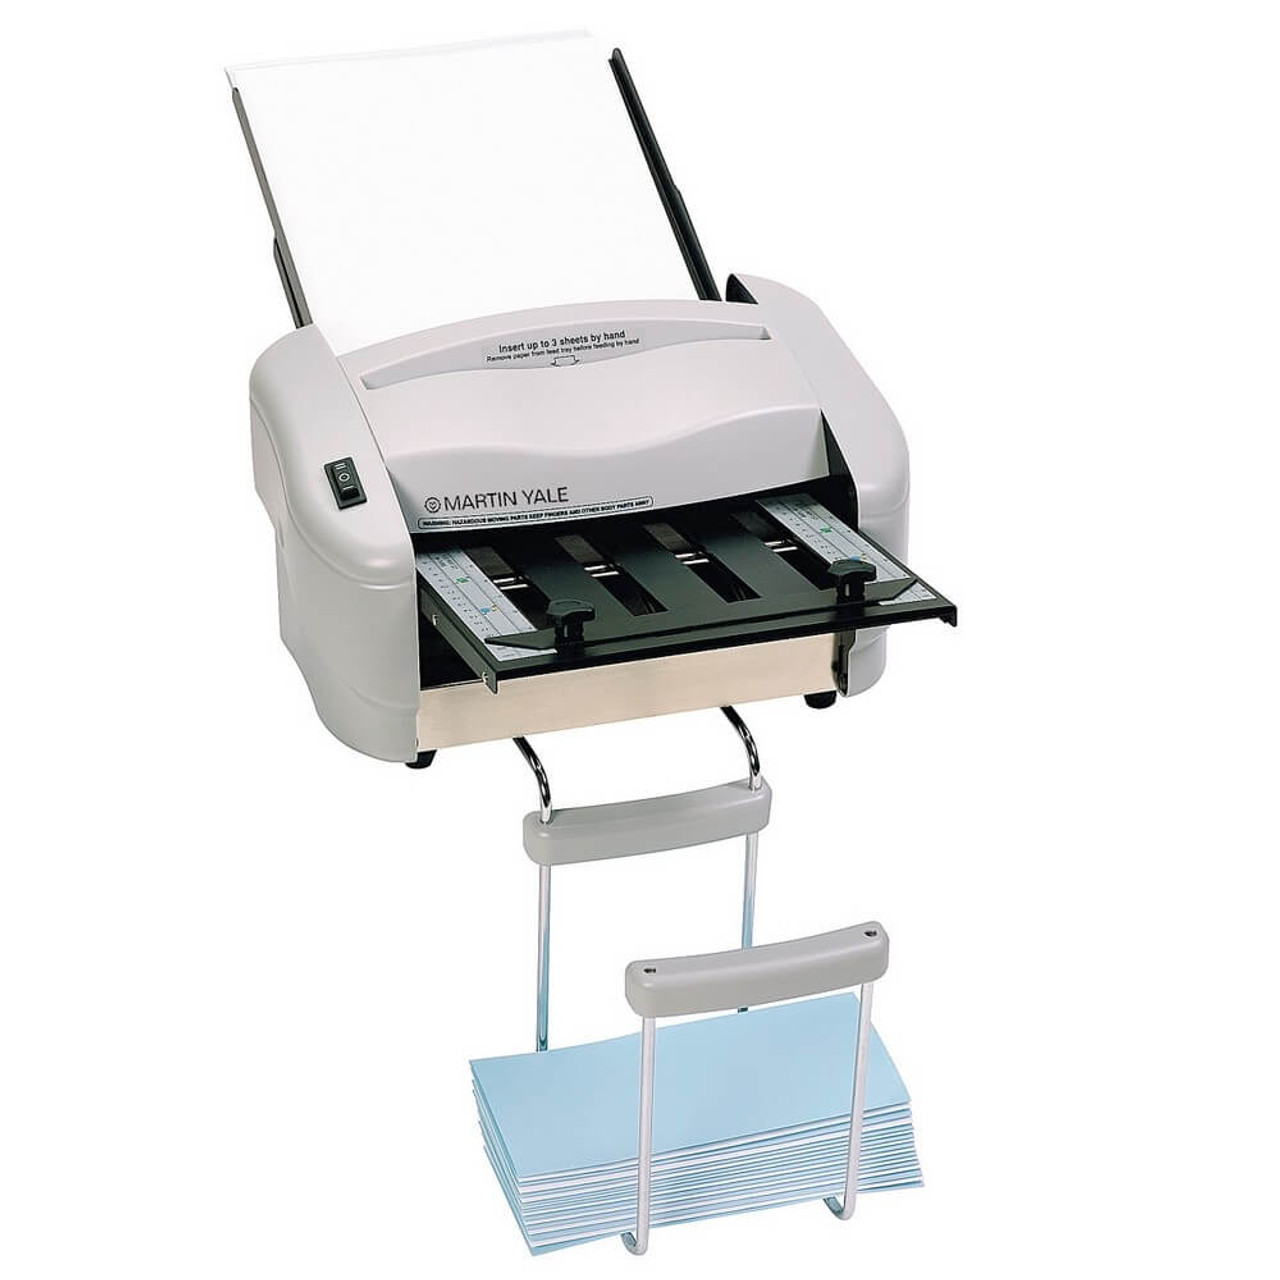 Martin Yale 7200 - A4 Paper Folding Machine with Catch Basket